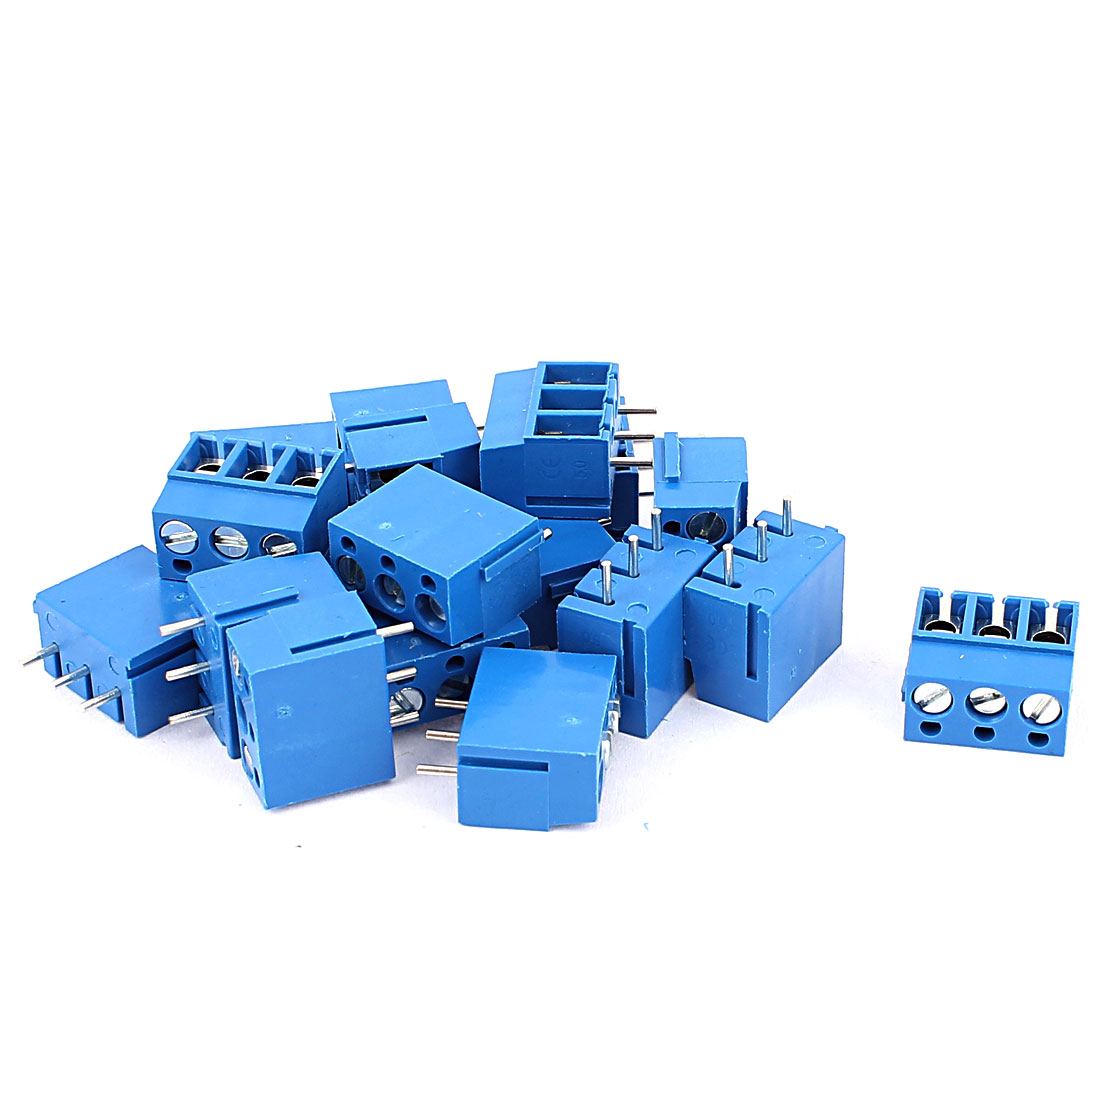 18pcs 3 Way 5mm Pitch Pluggable Type PCB Screw Terminal Barrier Block Connector for 14-22AWG Wire